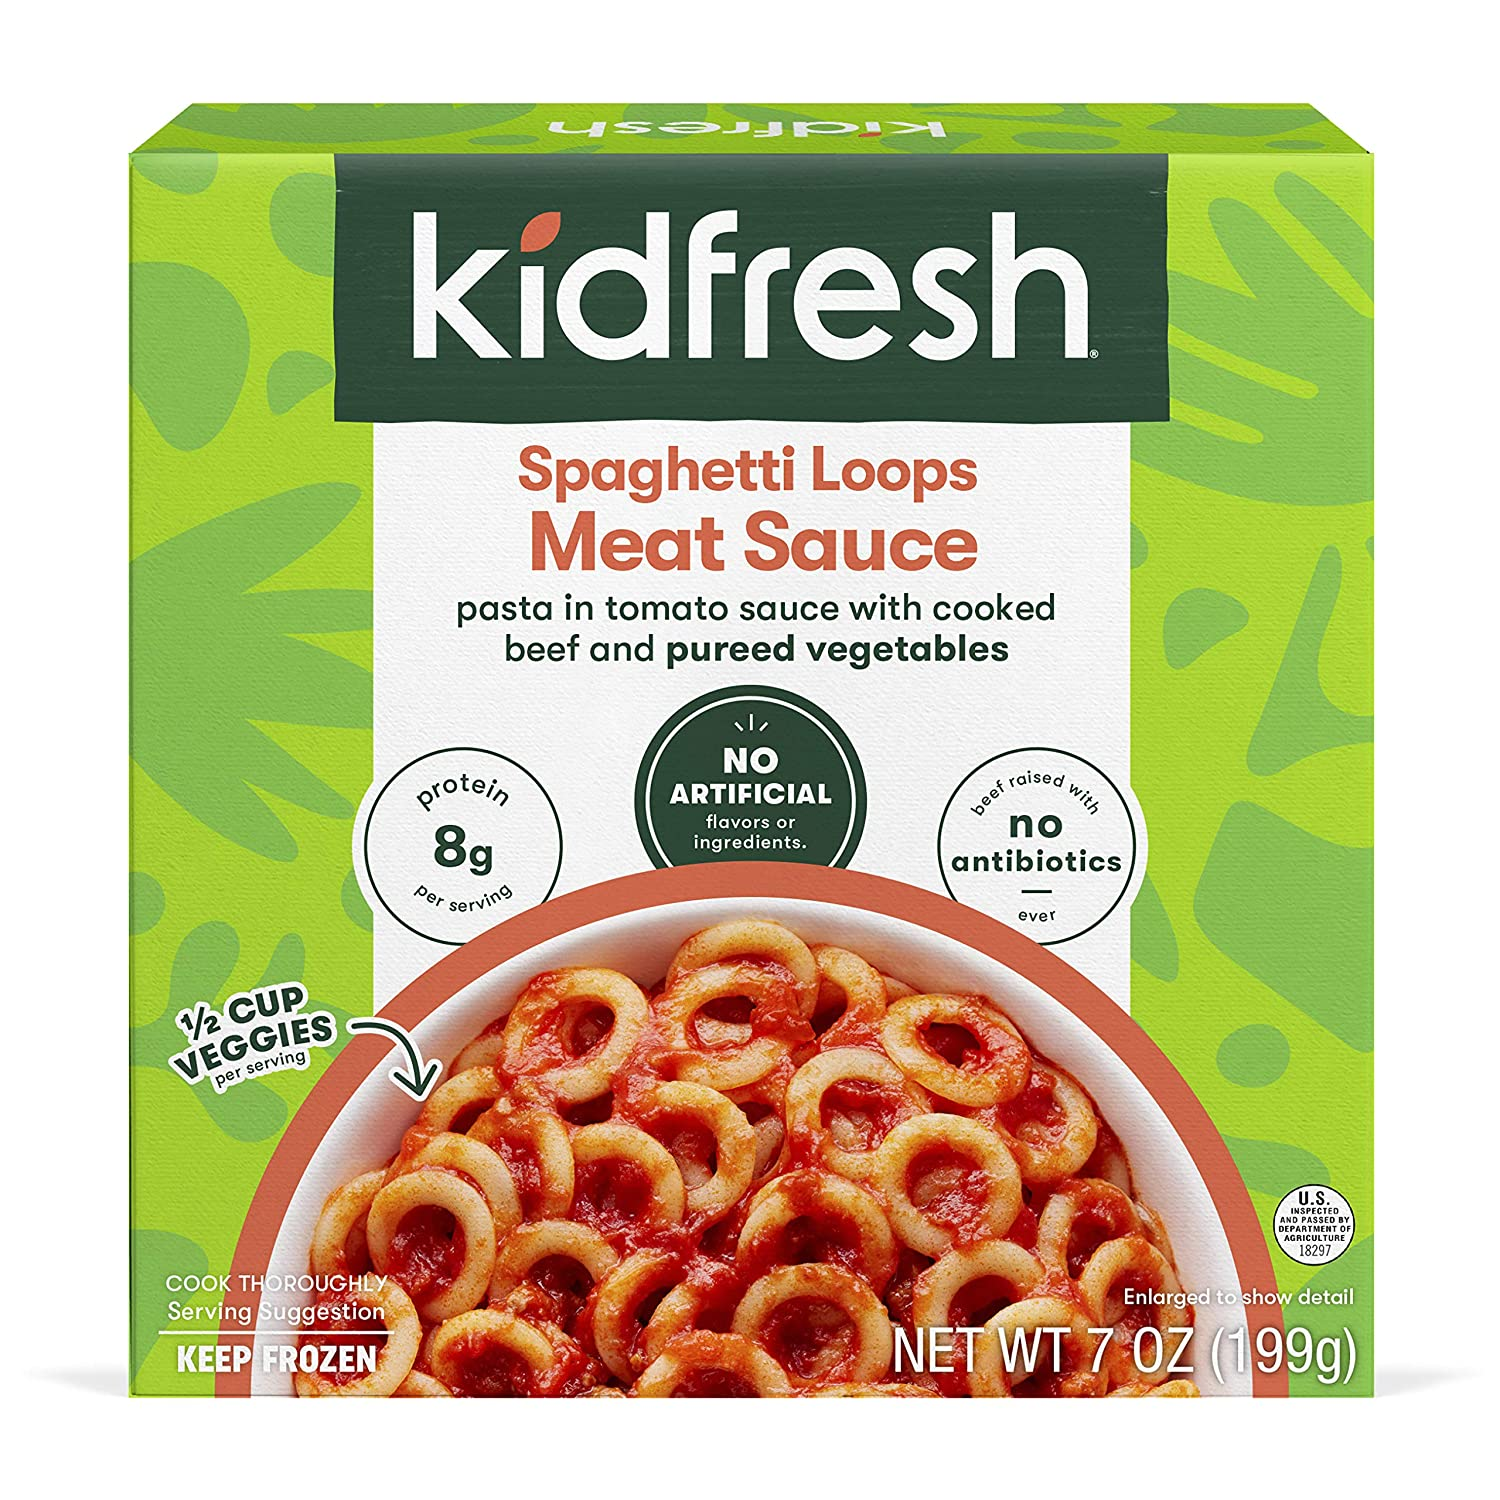 Kidfresh Free shipping on posting reviews Spaghetti shopping Loops Meat Sauce an Veggies with Hidden Made